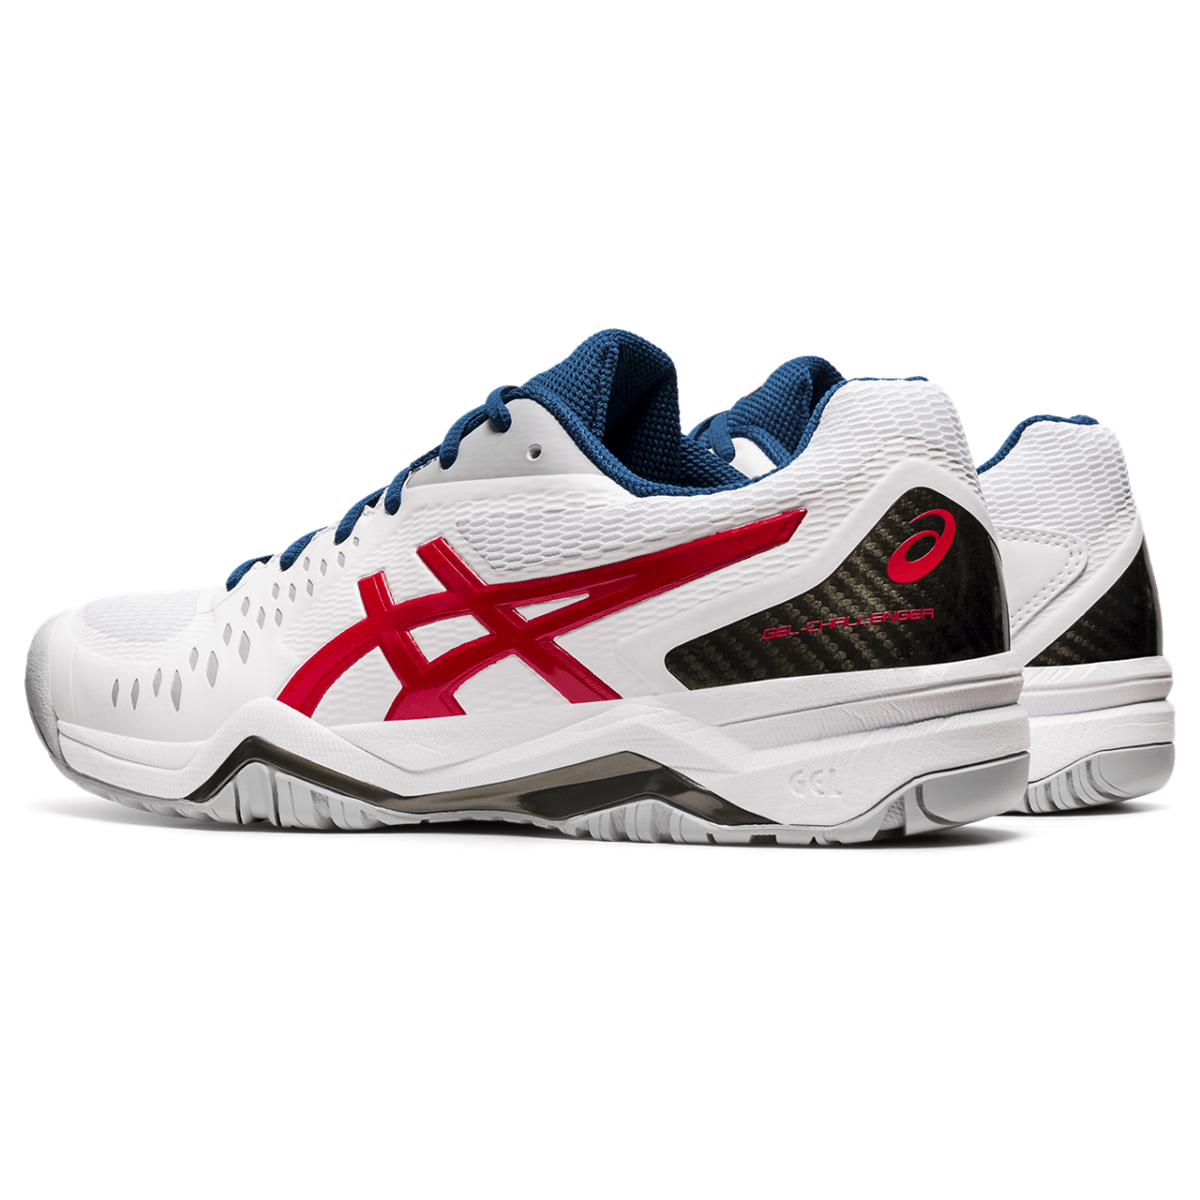 Asics Gel-Challenger 12 M 2021 (White/Classic Red)